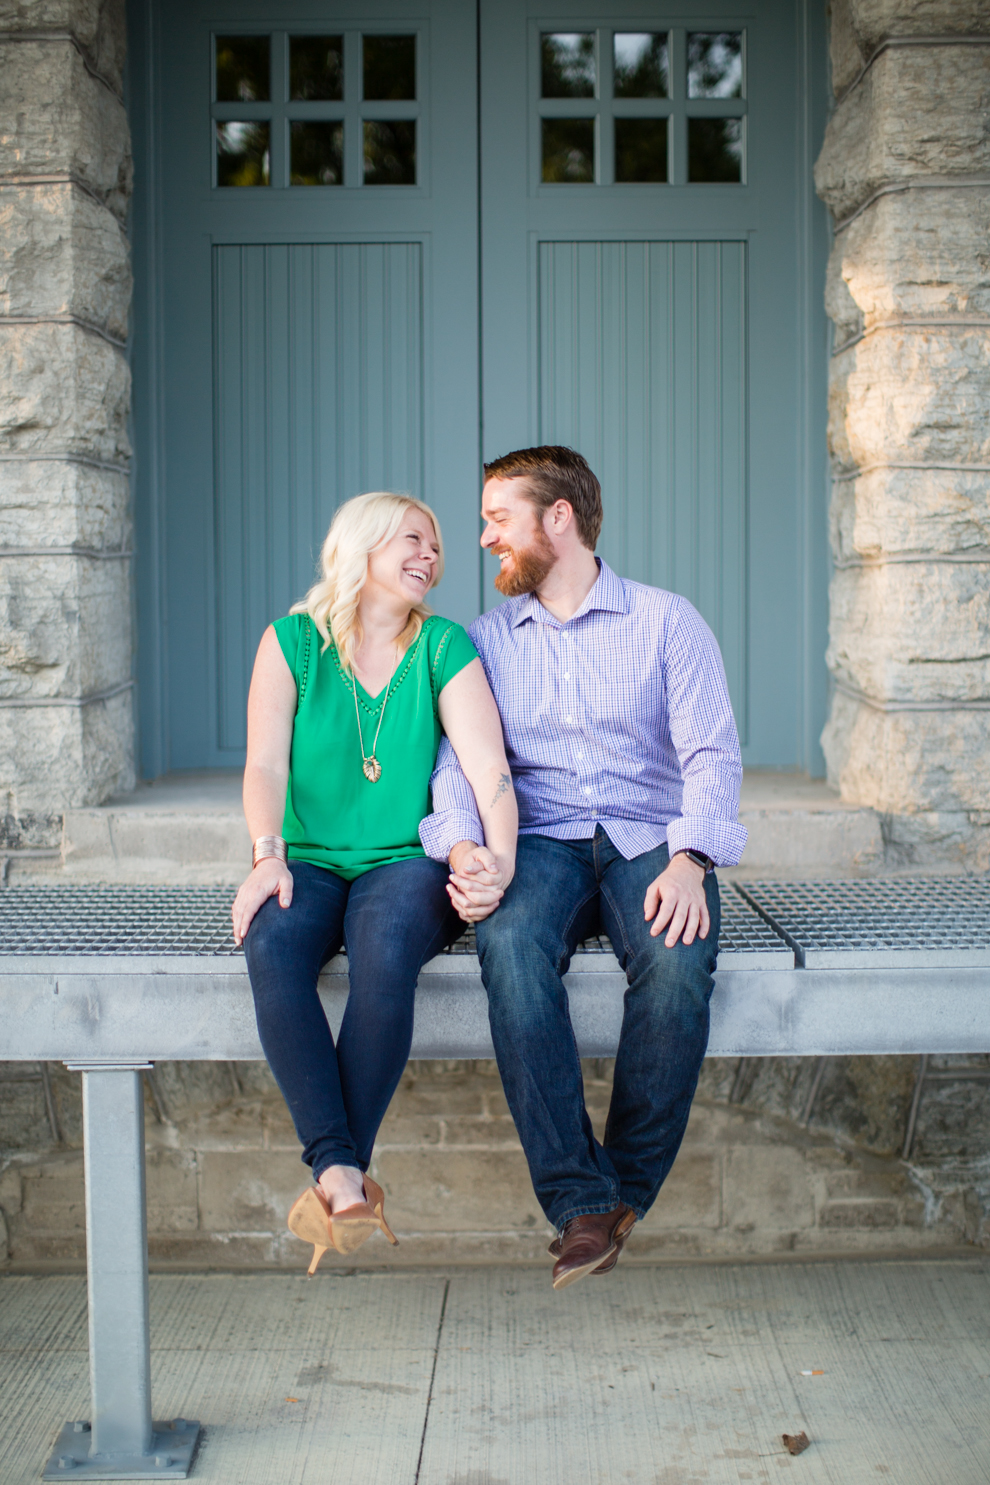 052116_Ryan_Liz_Engagement_042